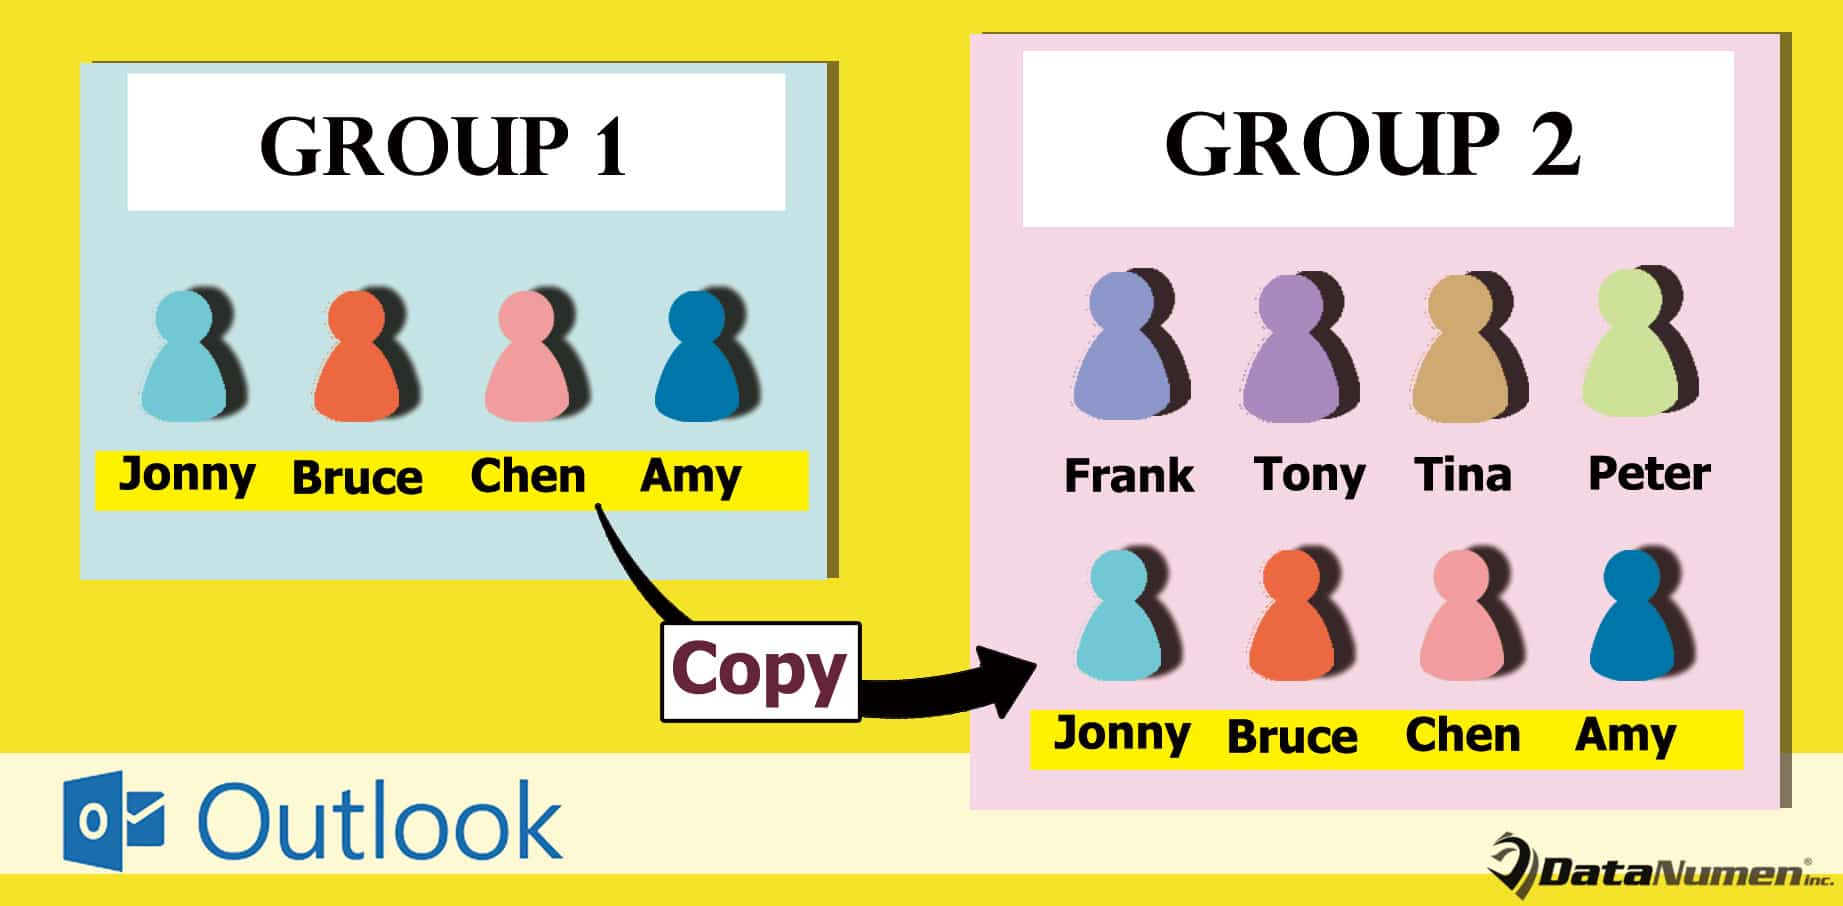 2 Methods to Copy All Members from One Contact Group to